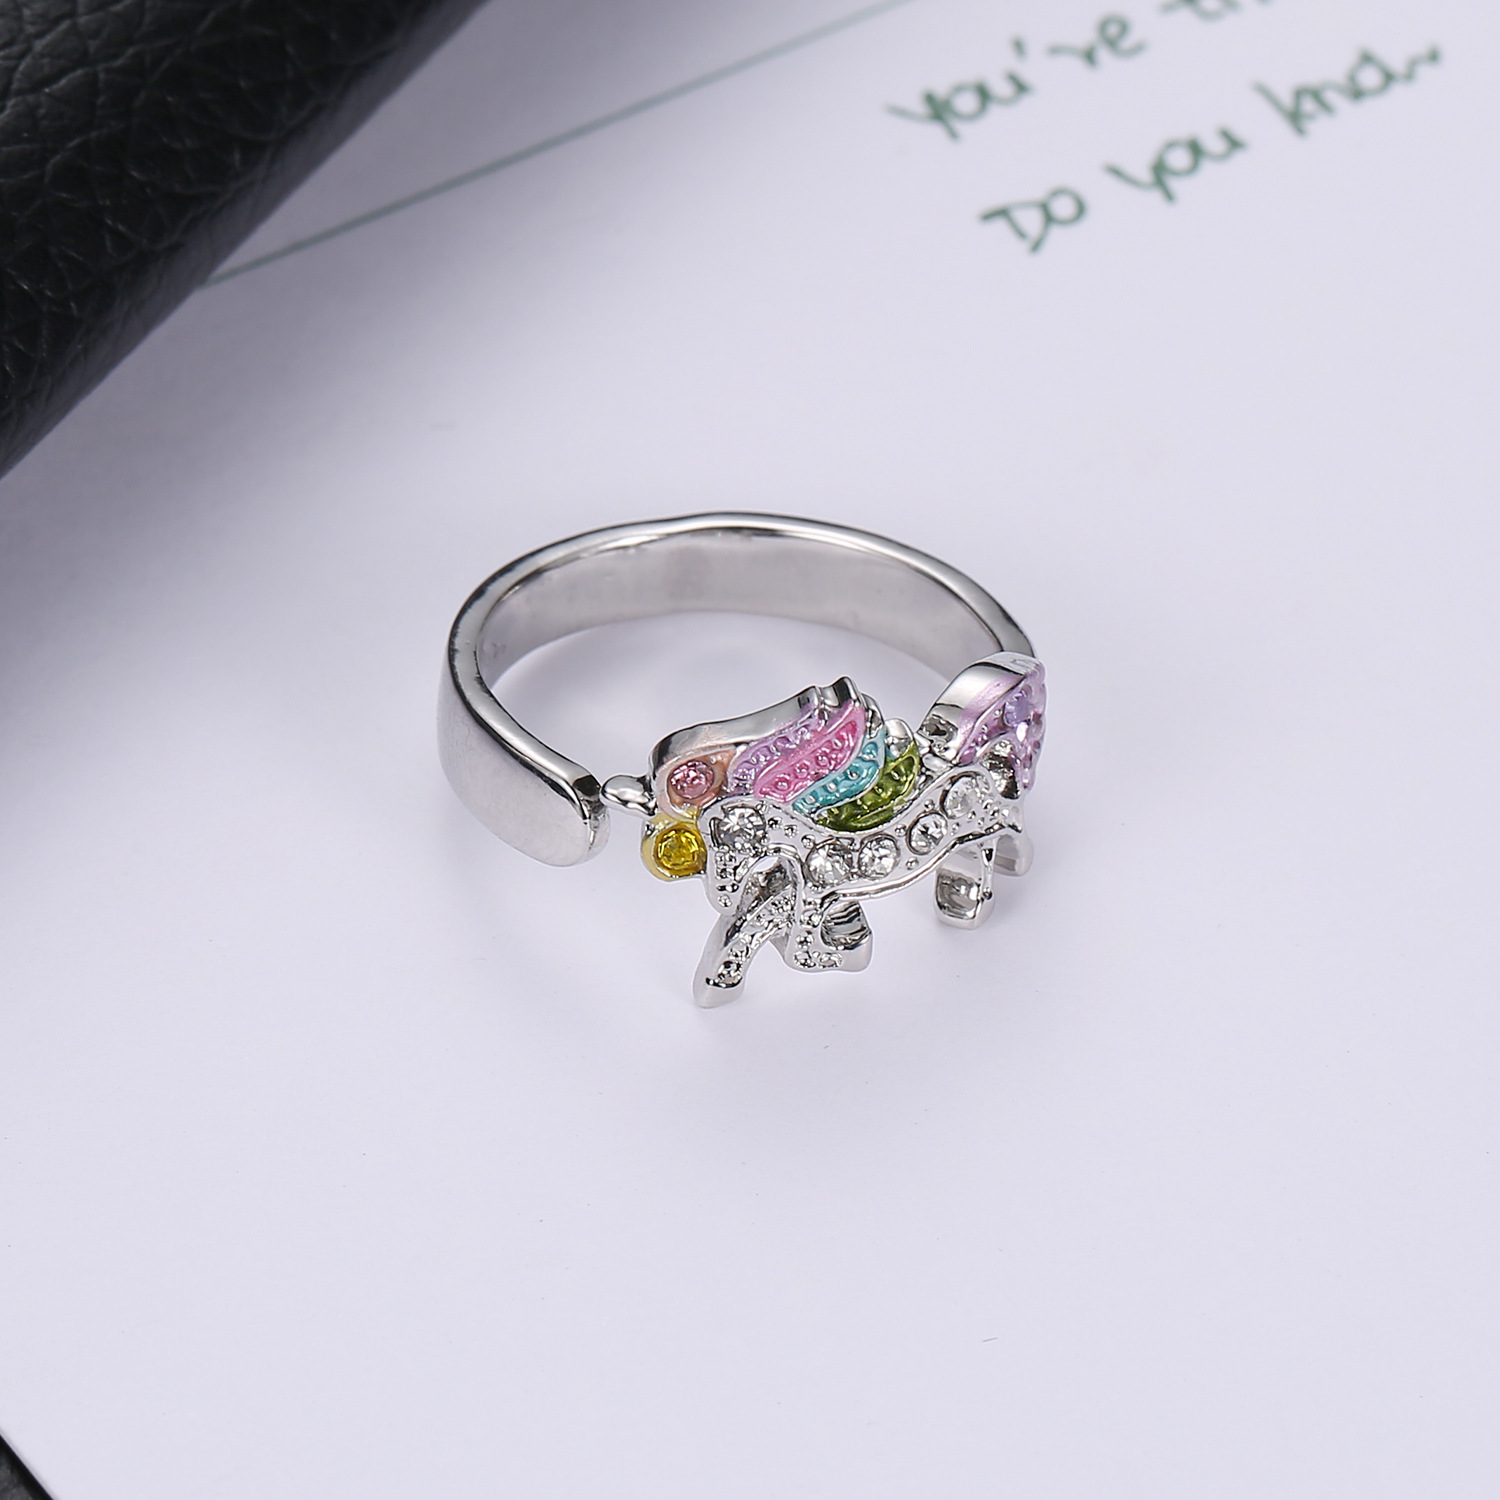 2019 Fashion Cartoon Cute Unicorn Ring Adjustable Alloy Crystal Finger Ring Jewelry For Women Wedding & Engagement Jewelry